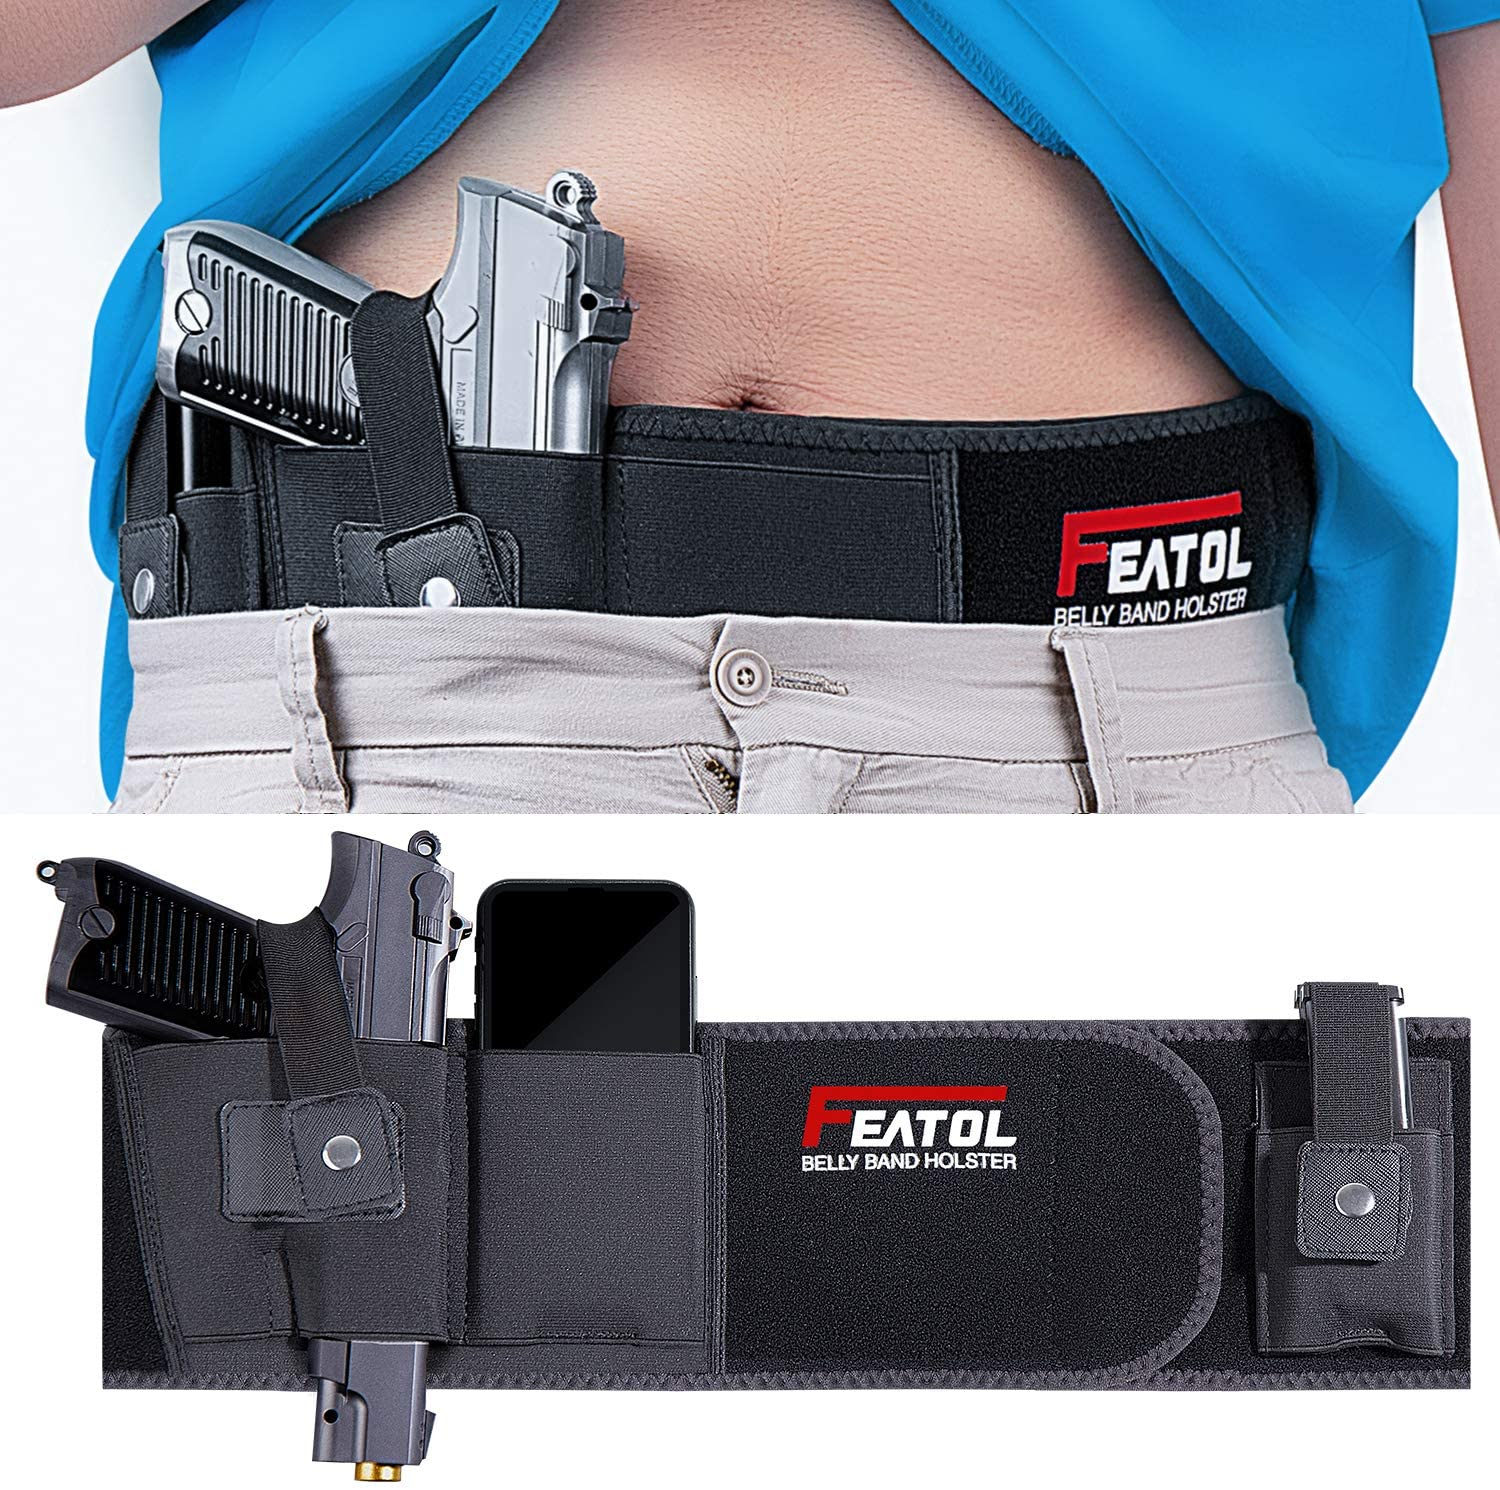 FEATOL Belly Band Holster for Concealed Carry, Gun Holsters for Men Women, Fits Gun Smith and Wesson Bodyguard, Shield, Glock 19, 17, 42, 43, P238, Ruger LCP, and Similar Sized Guns